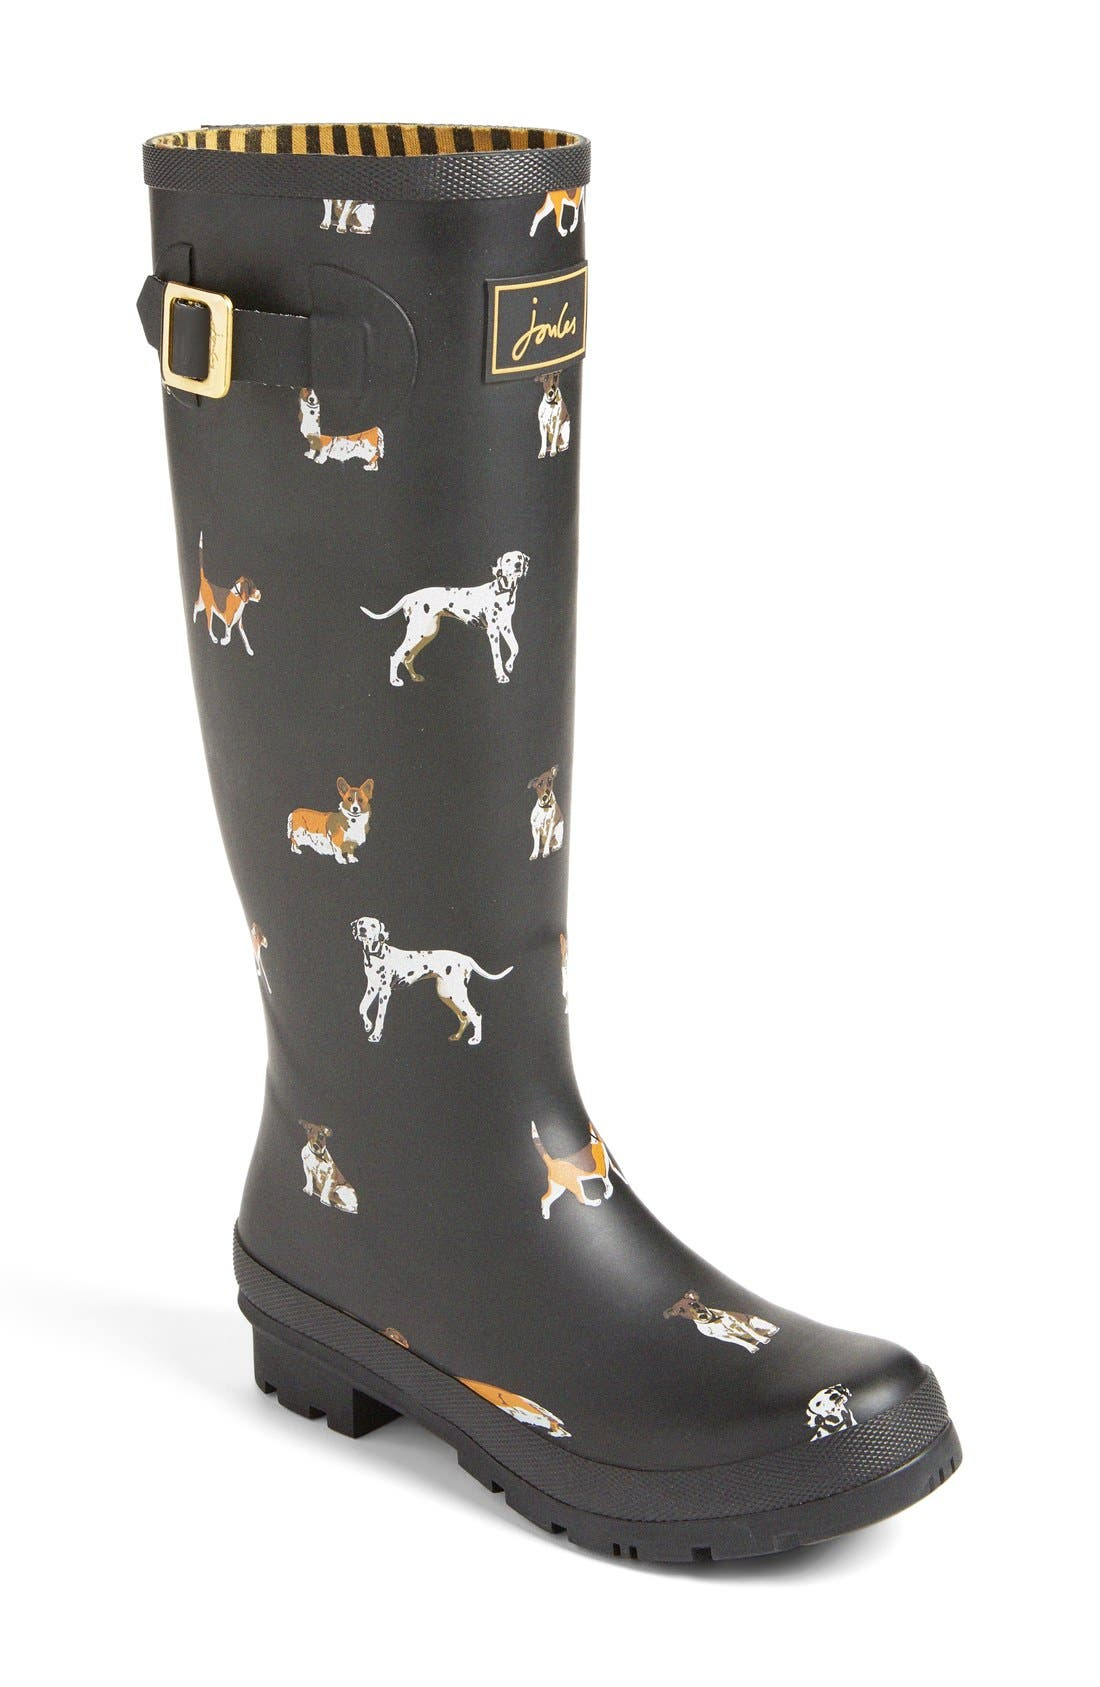 Main Image - Joules 'Welly' Print Rain Boot (Women)